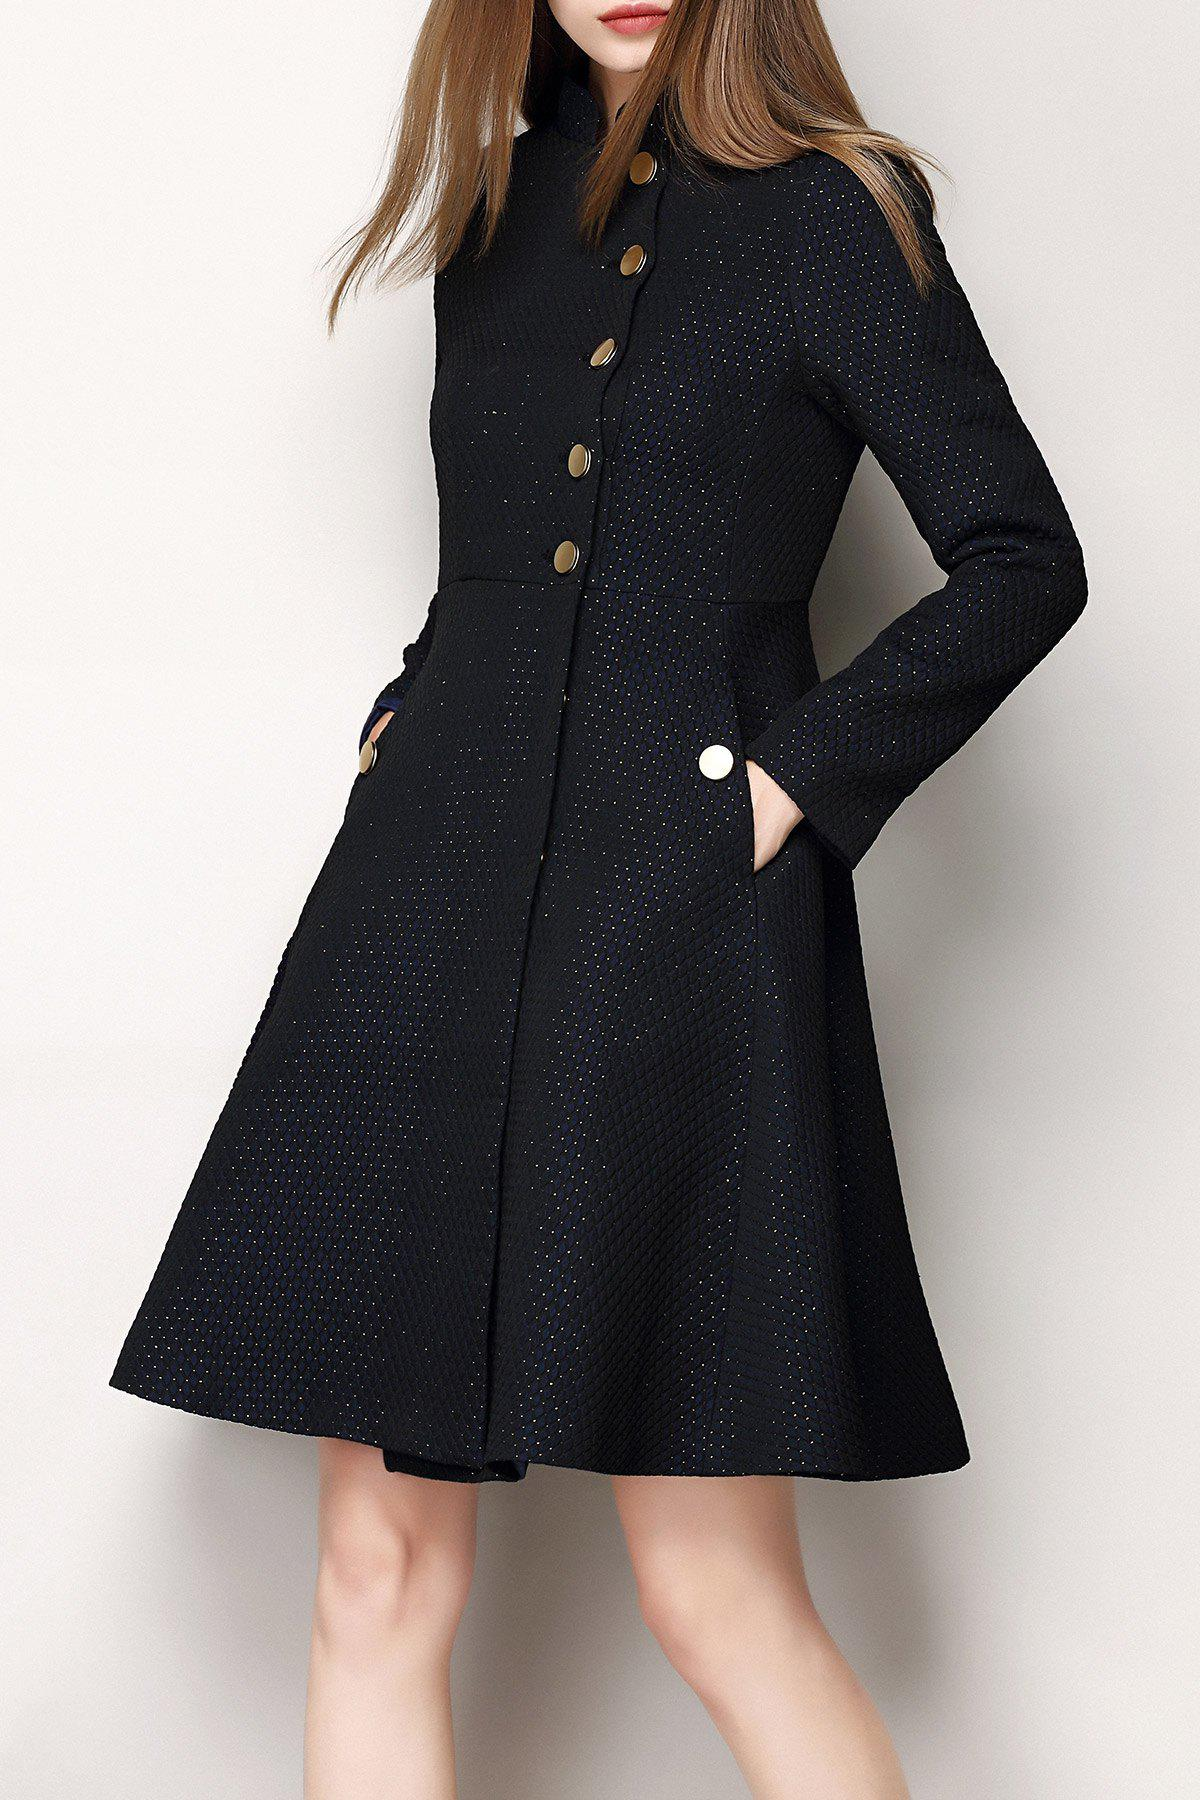 Jacquard Single Breasted A Line Coat - BLACK XL